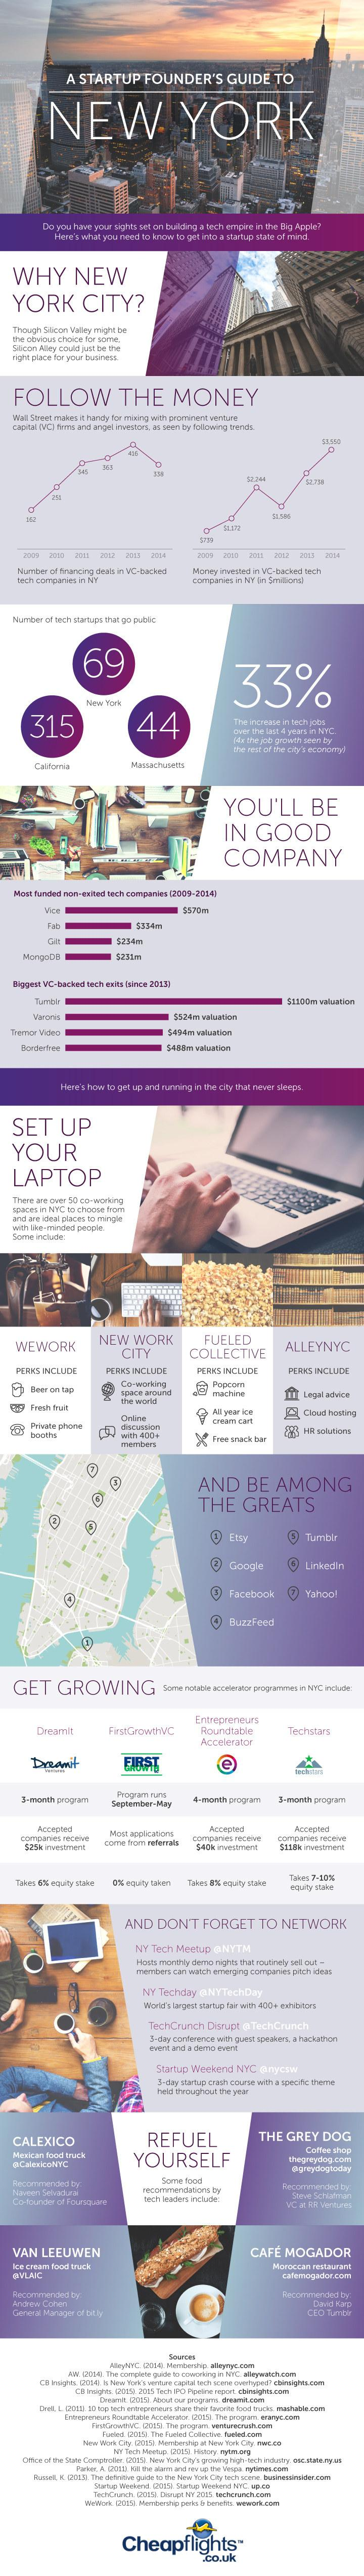 a-startup-founders-guide-to-new-york-infographic